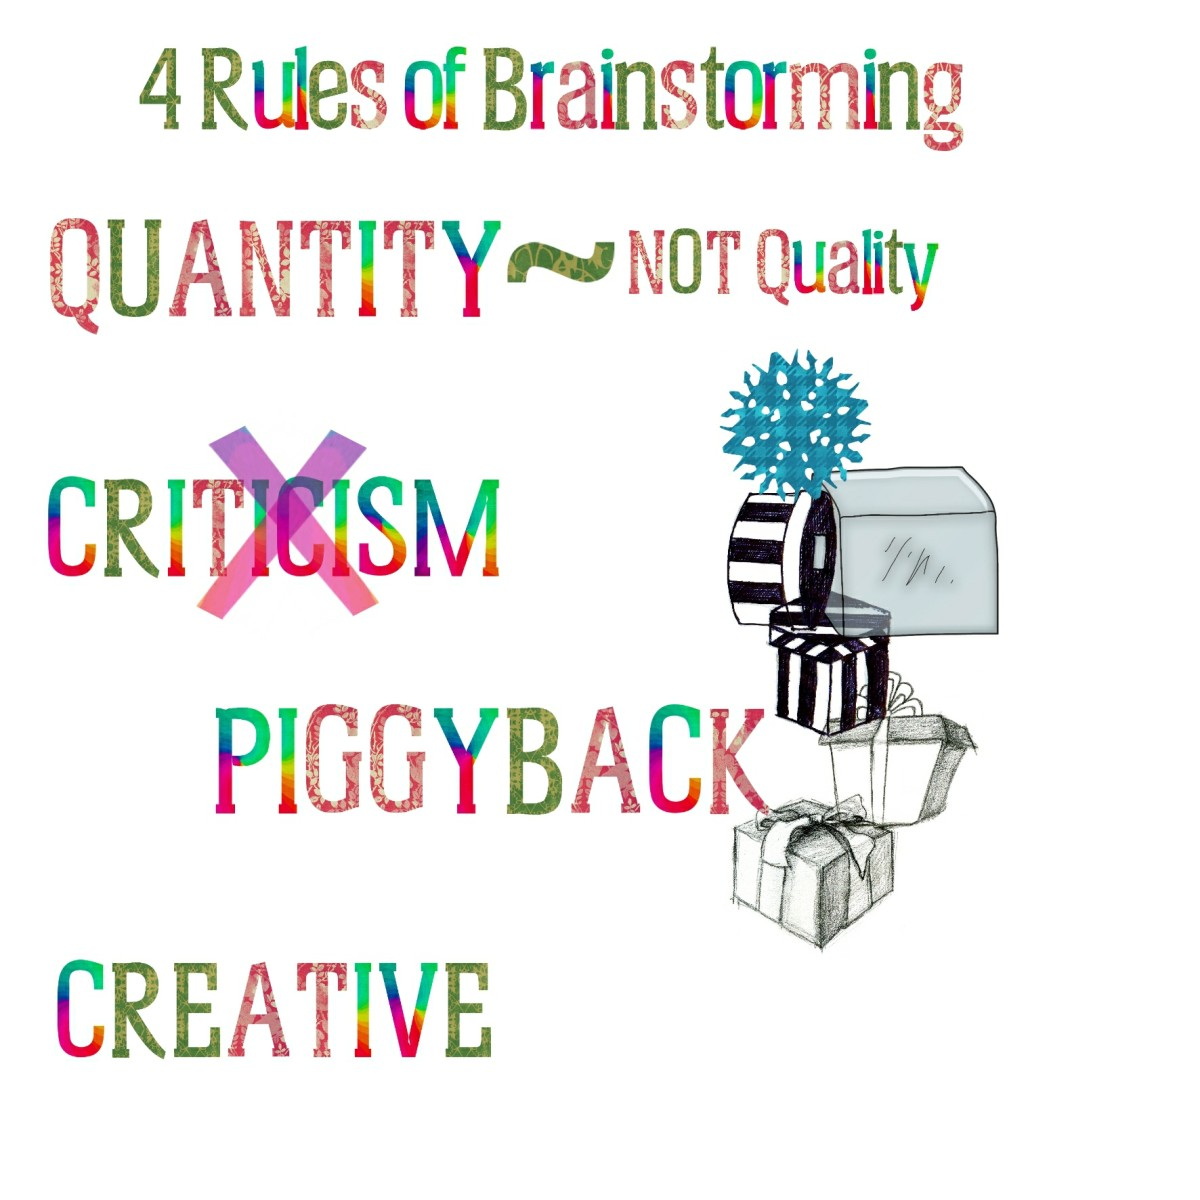 4 Rules of Brainstorming